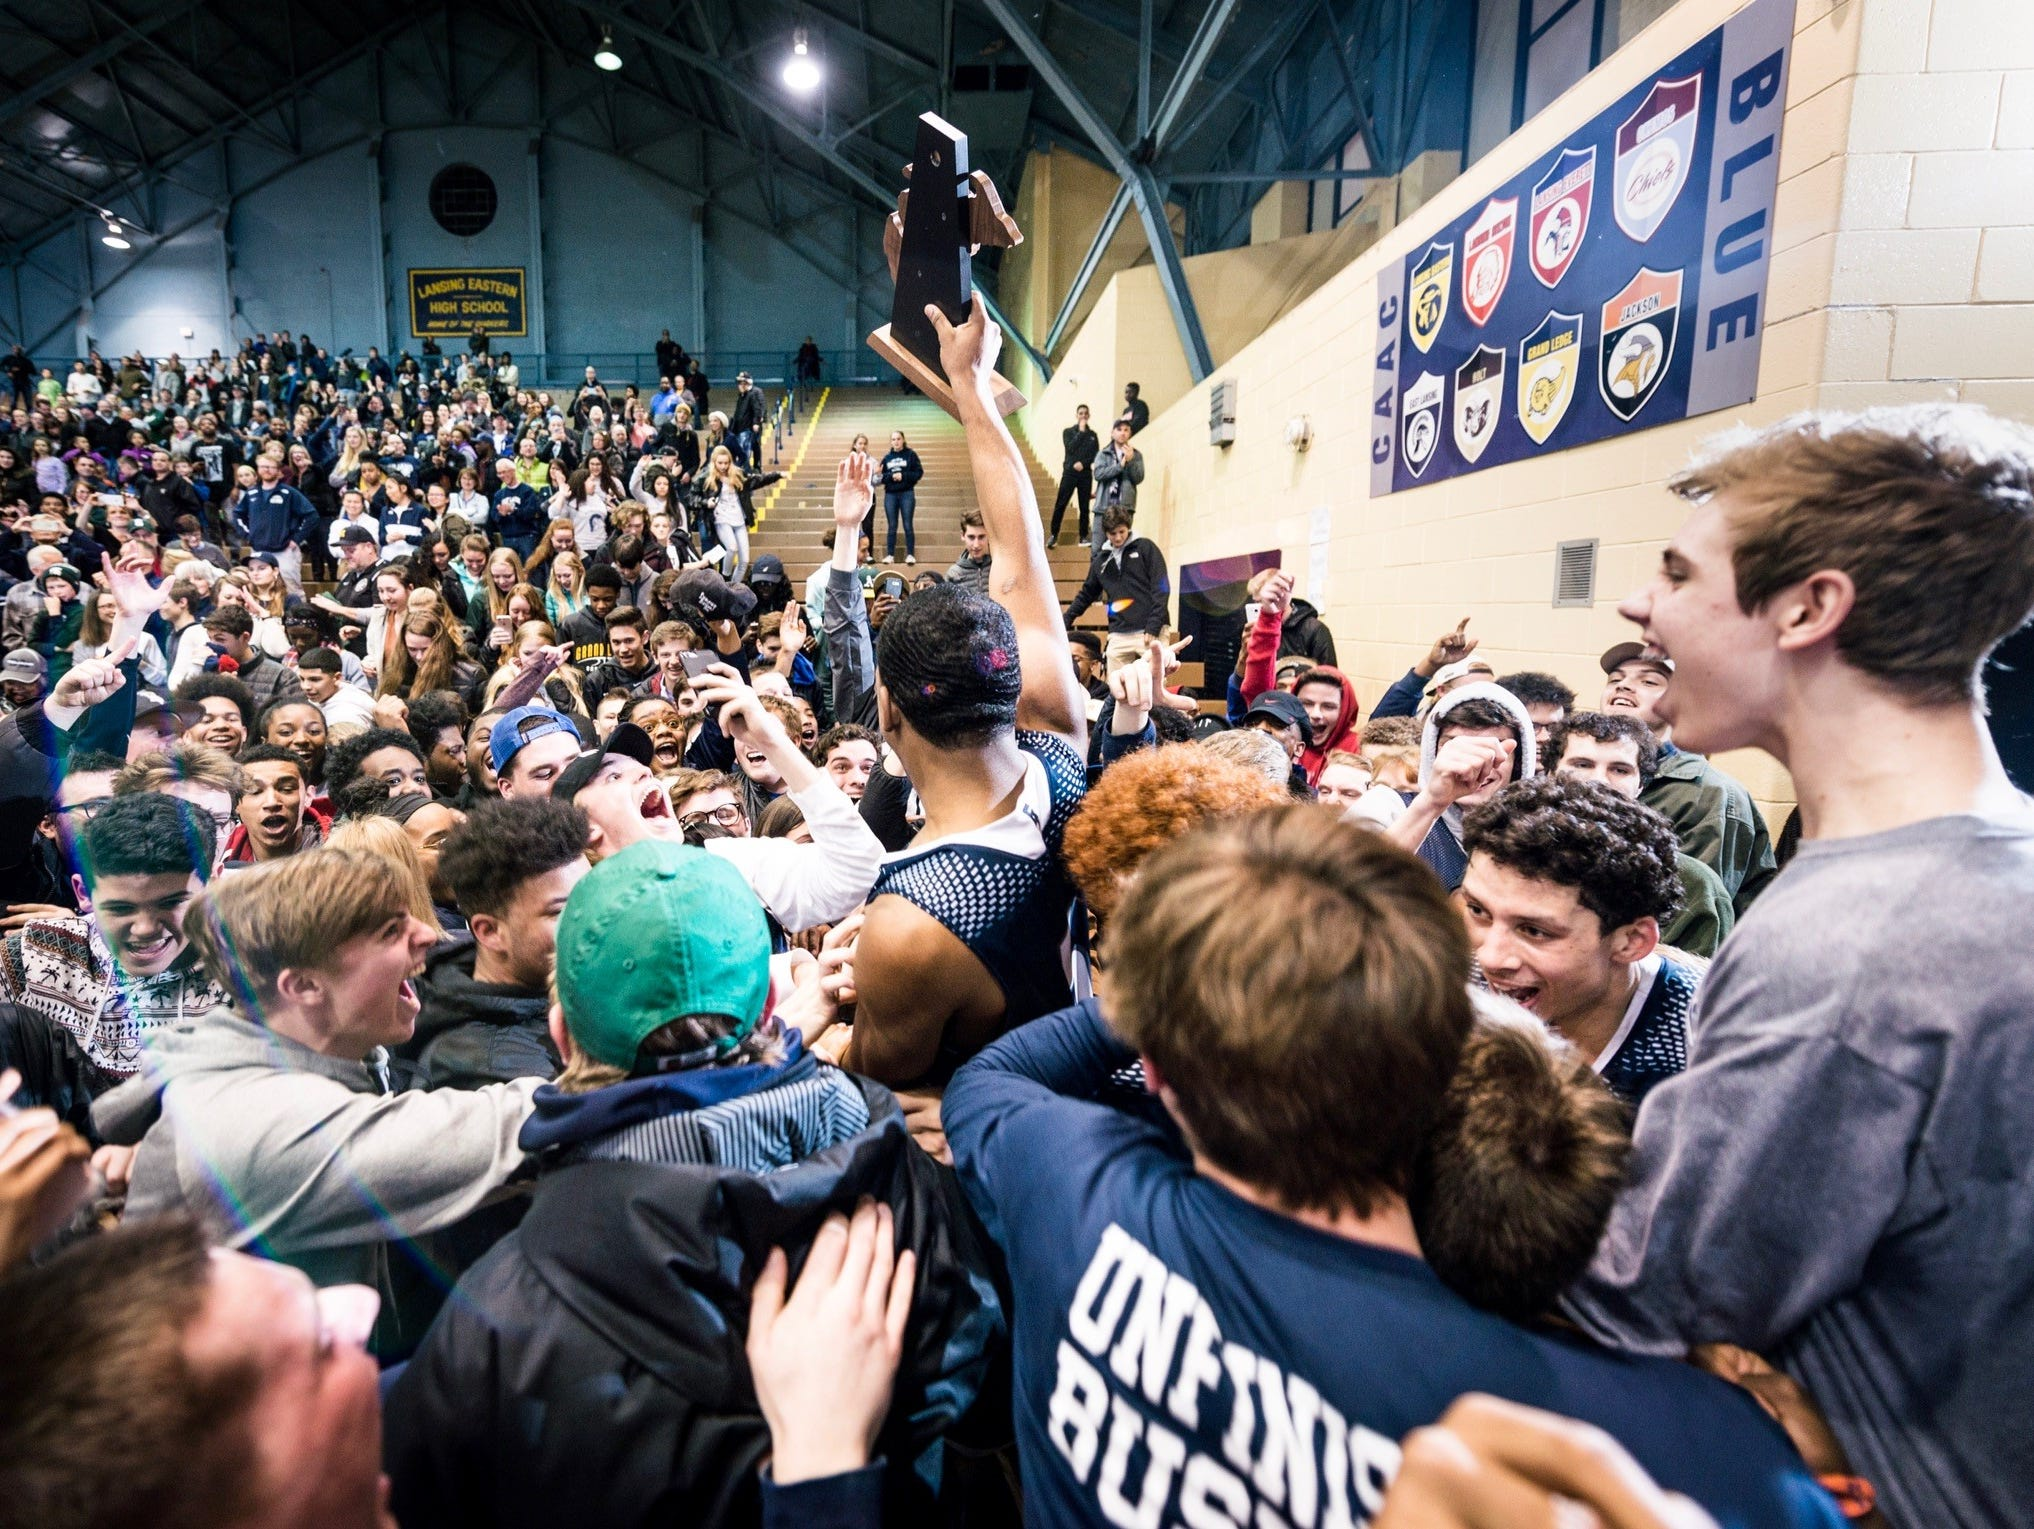 Malik Jones ,center, of East Lansing holds the Class A District Championship trophy as he celebrates with the East Lansing student section after their win over Everett Friday March 10, 2017 at Don Johnson Fieldhouse in Lansing.